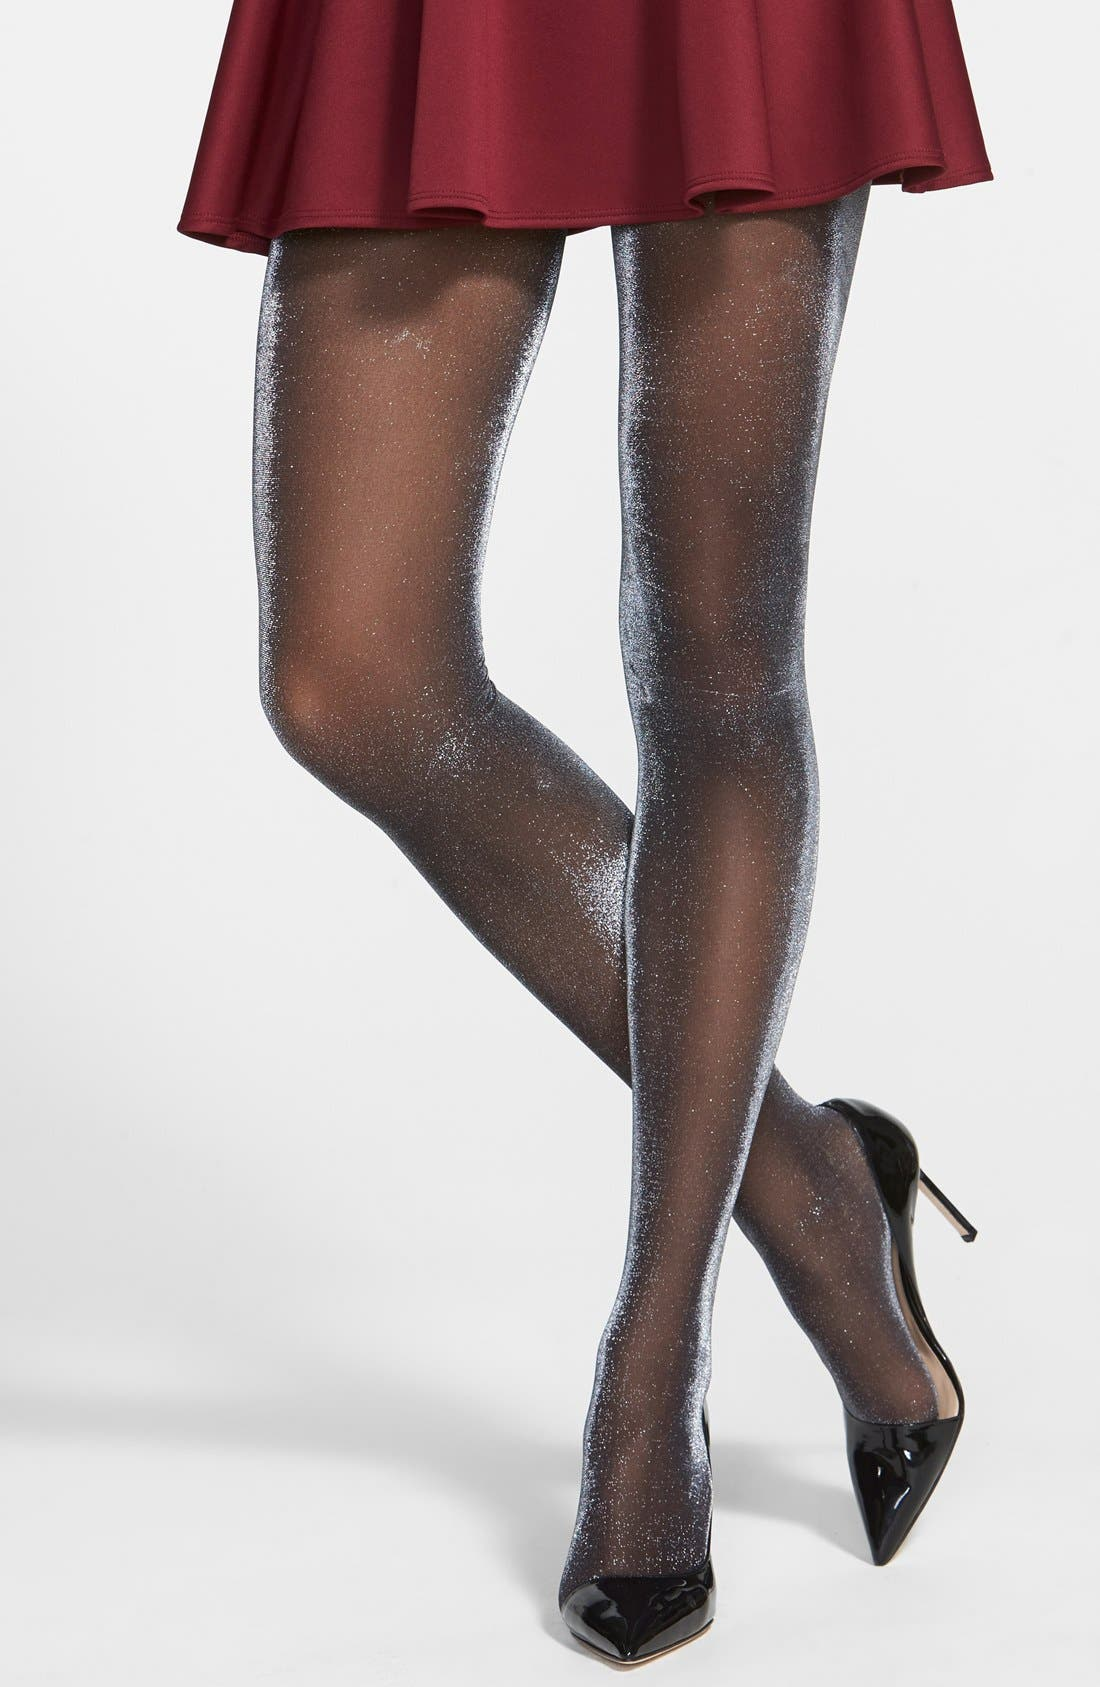 Oroblu 'Diamonds' Tights